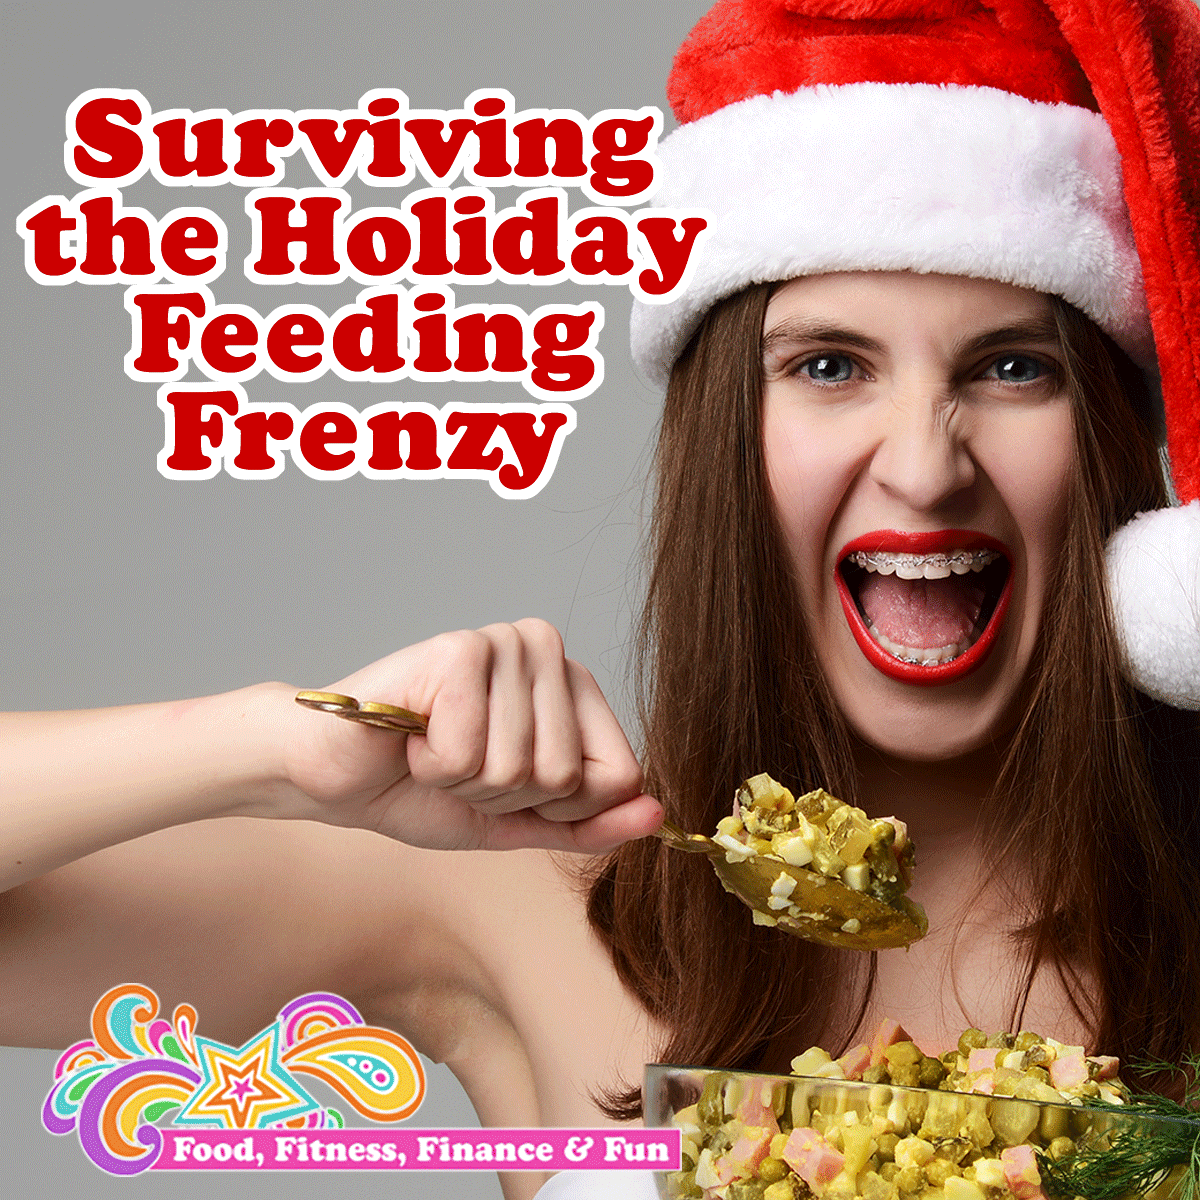 Surviving The Holiday Feeding Frenzy